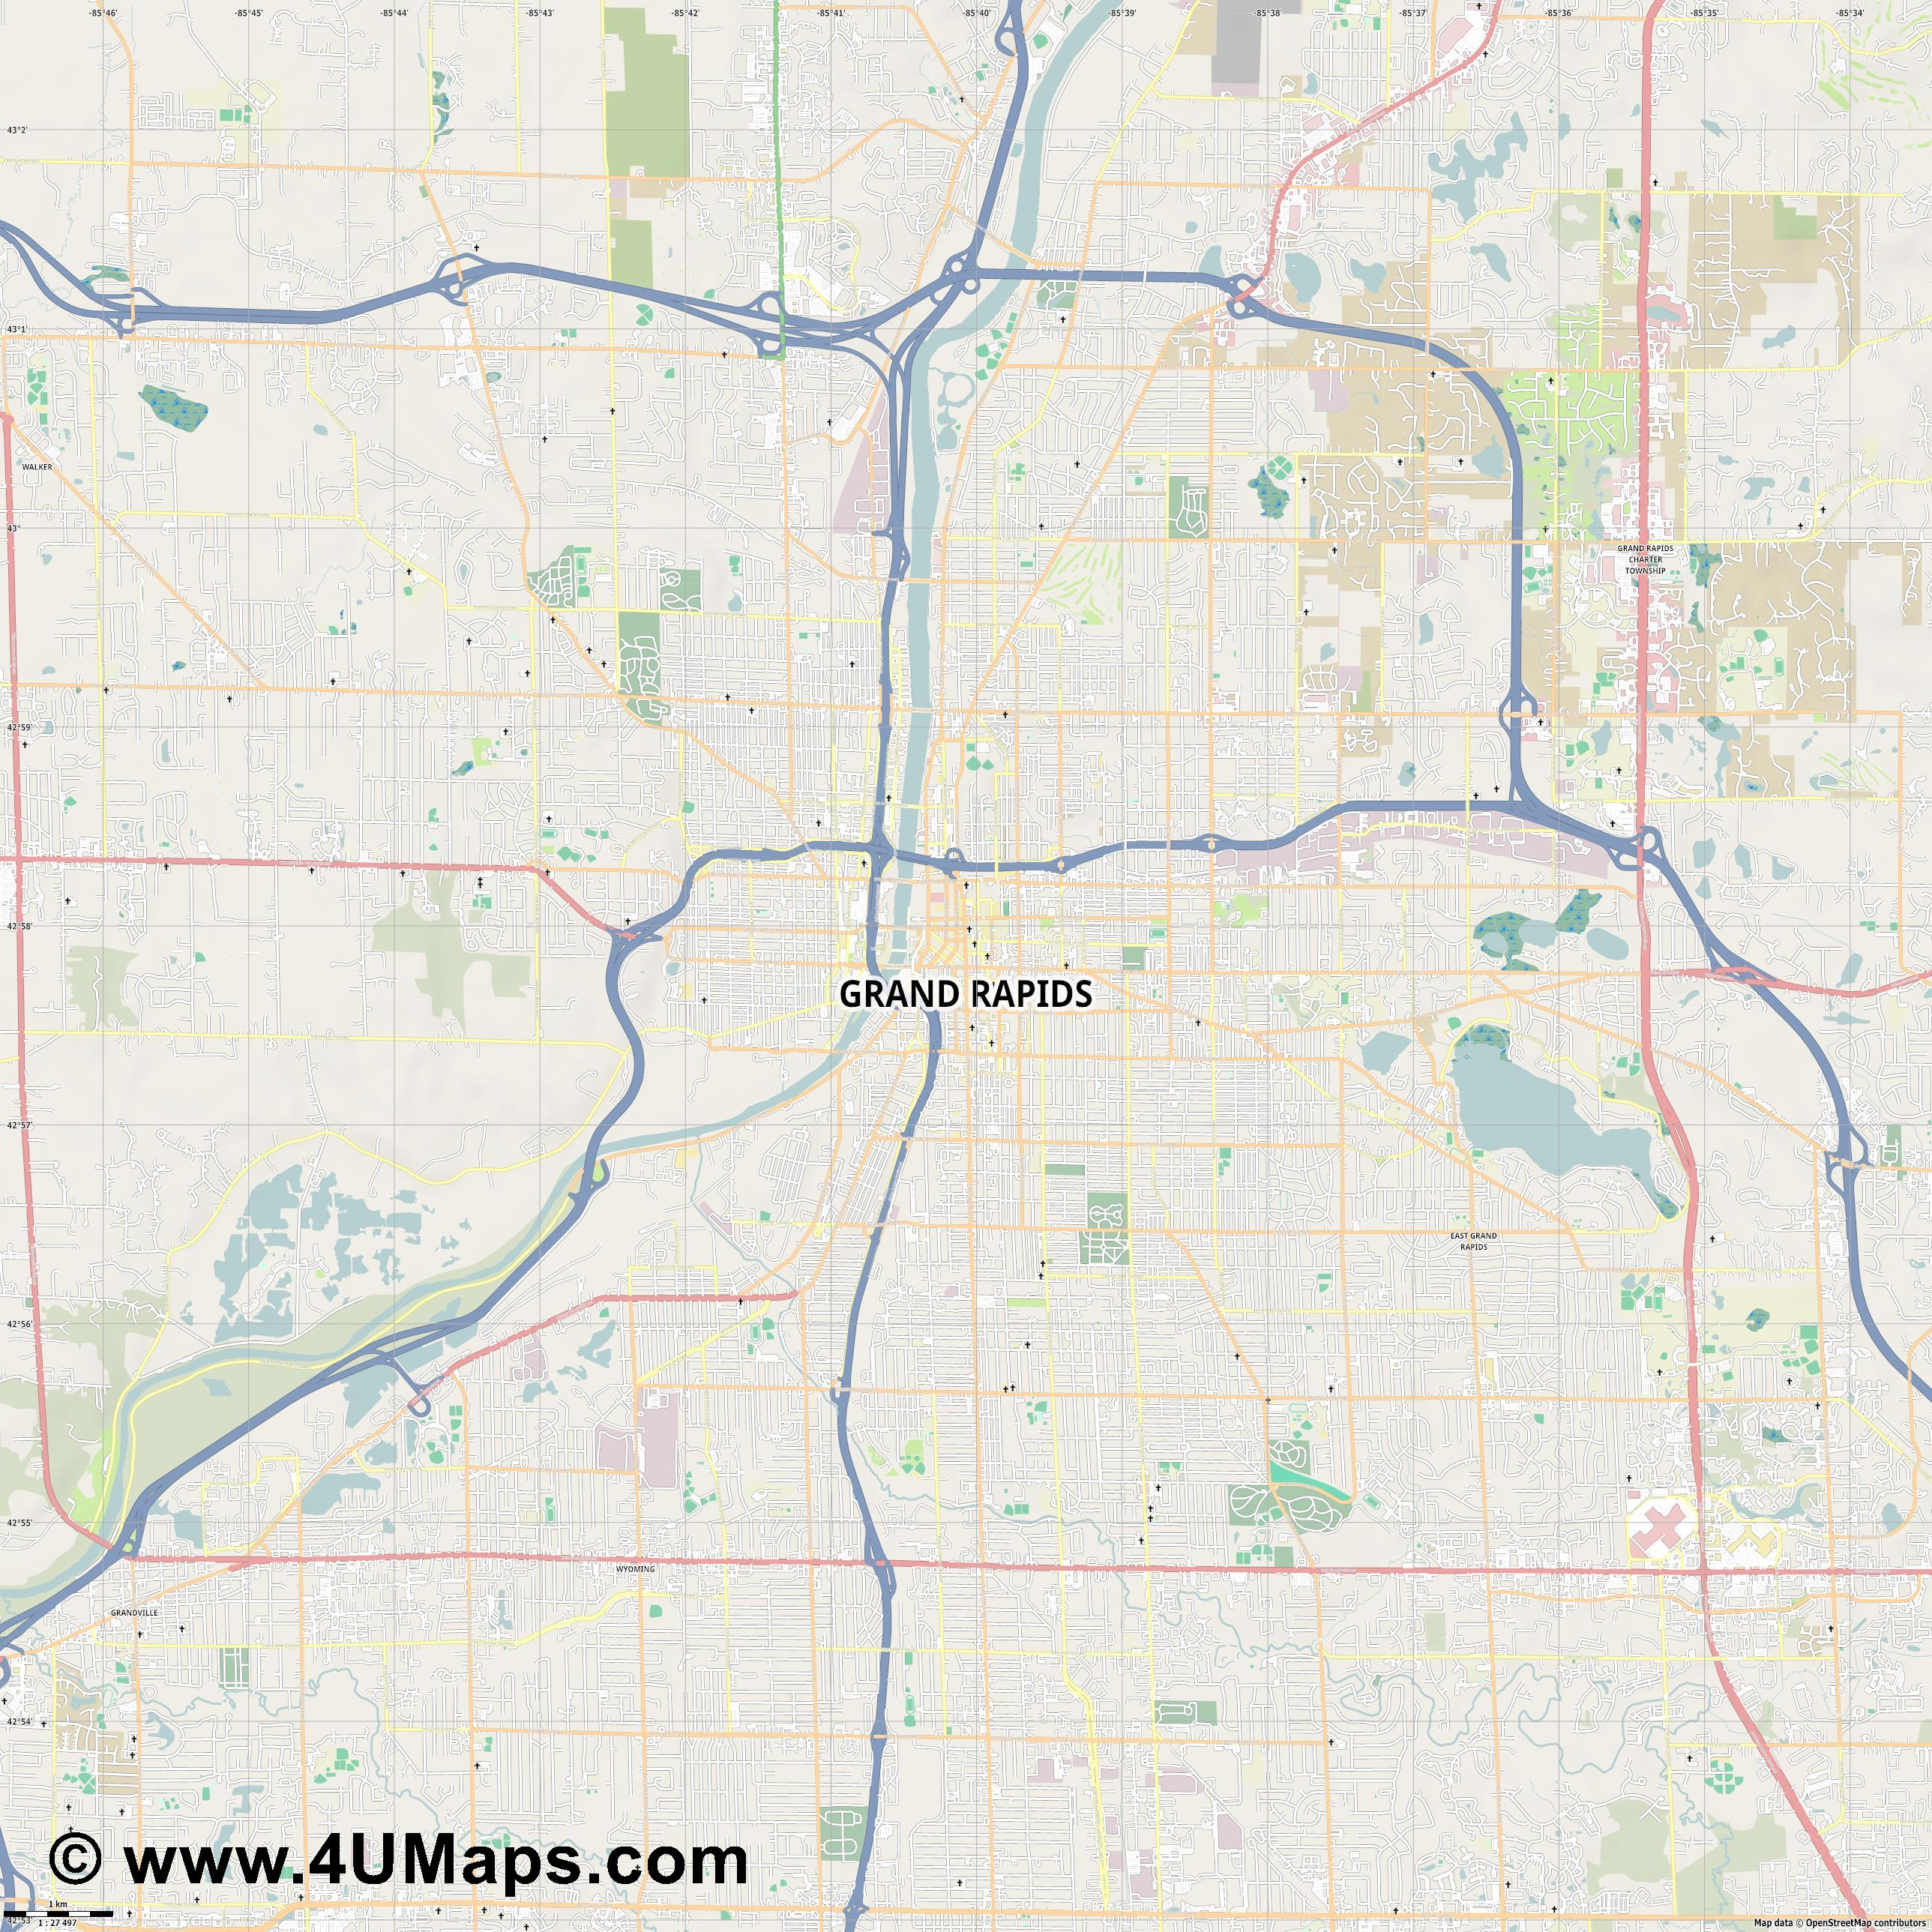 Grand Rapids  jpg high detail, large area preview vector city map